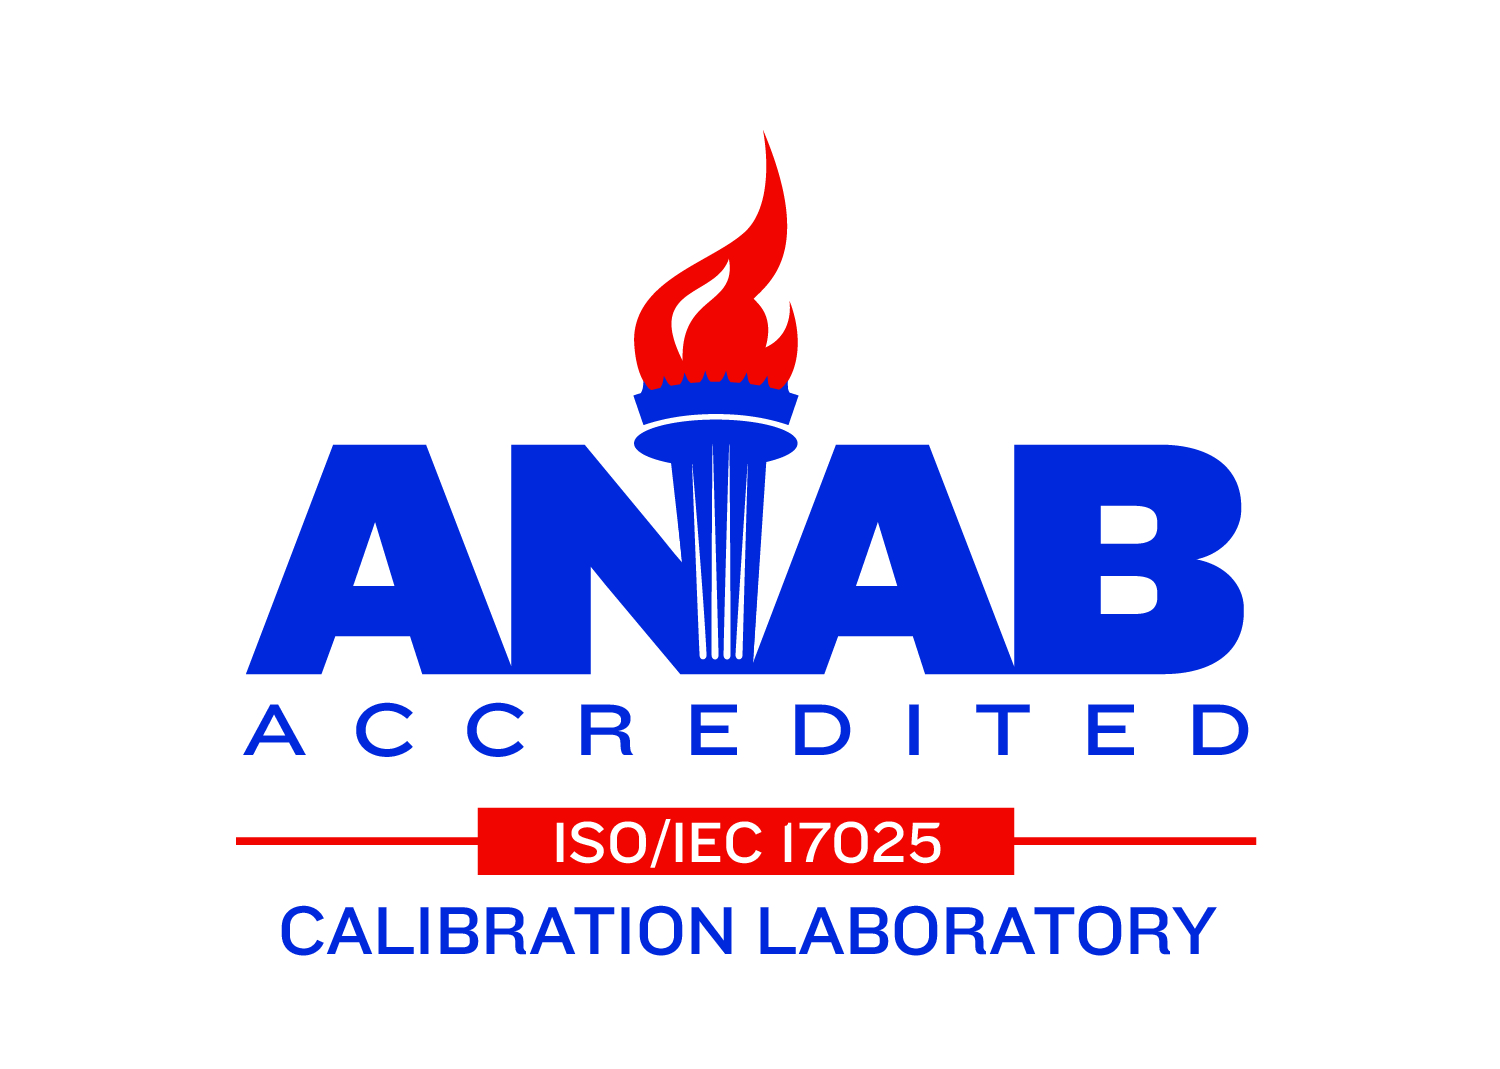 ISO/IEC 17025:2017 Accredited